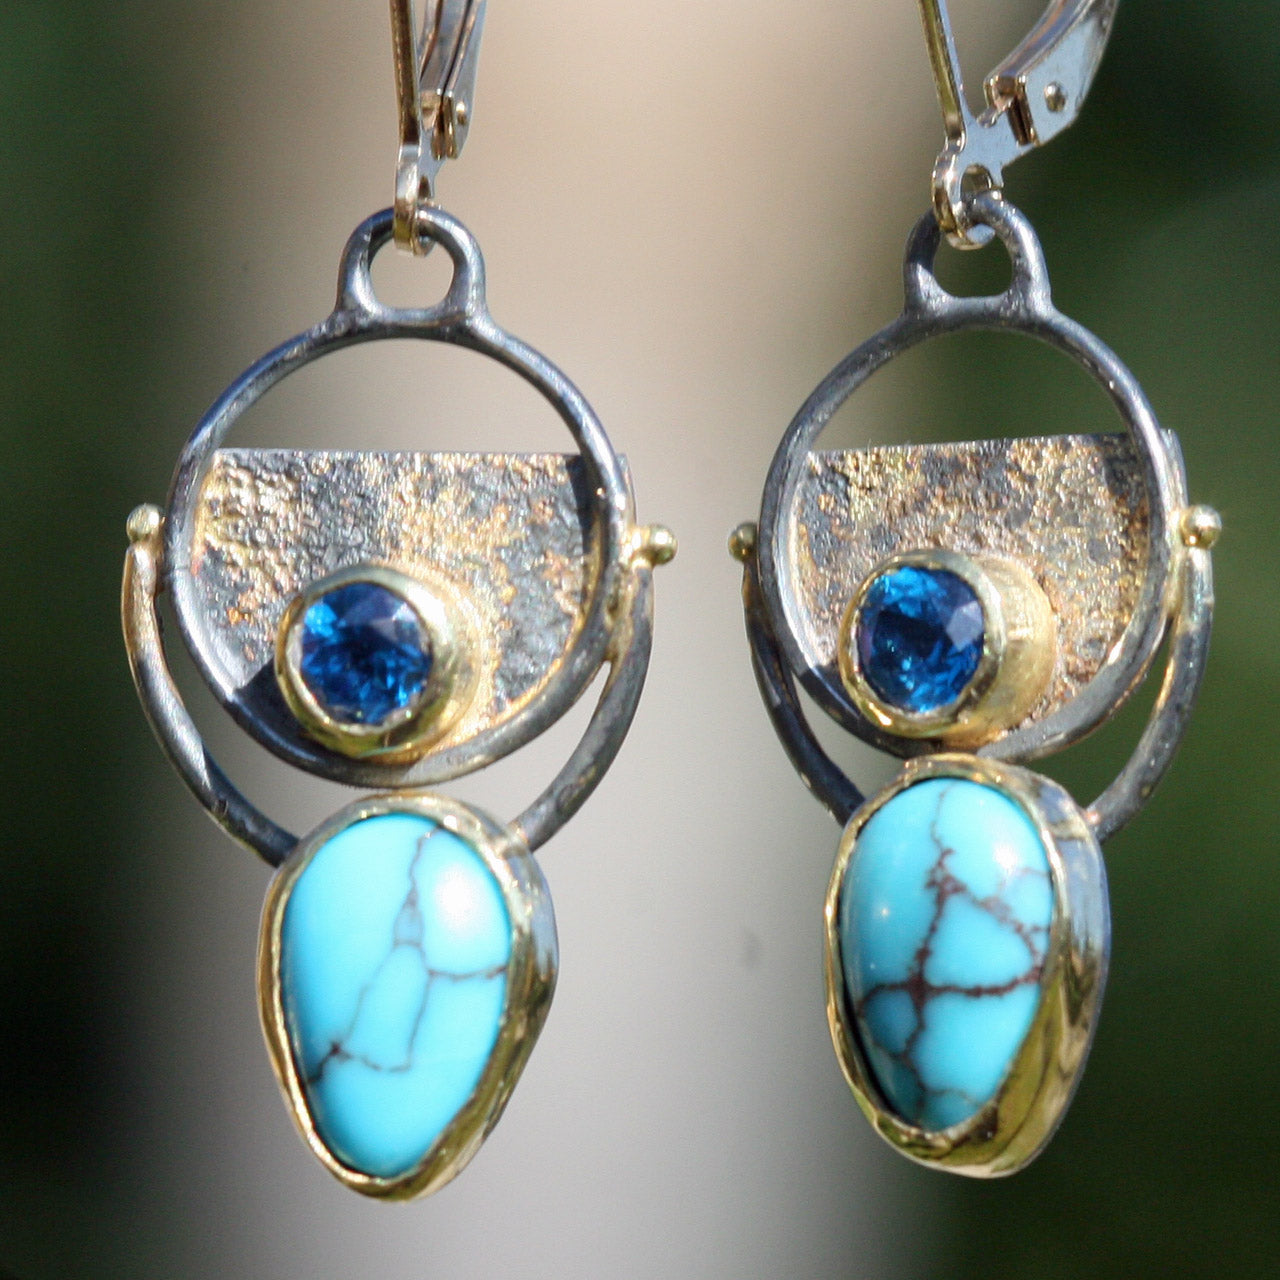 Earrings For The Modern High Priestess -Blue Topaz and Kingman Turquoise - Oxidized Sterling and 18k Gold